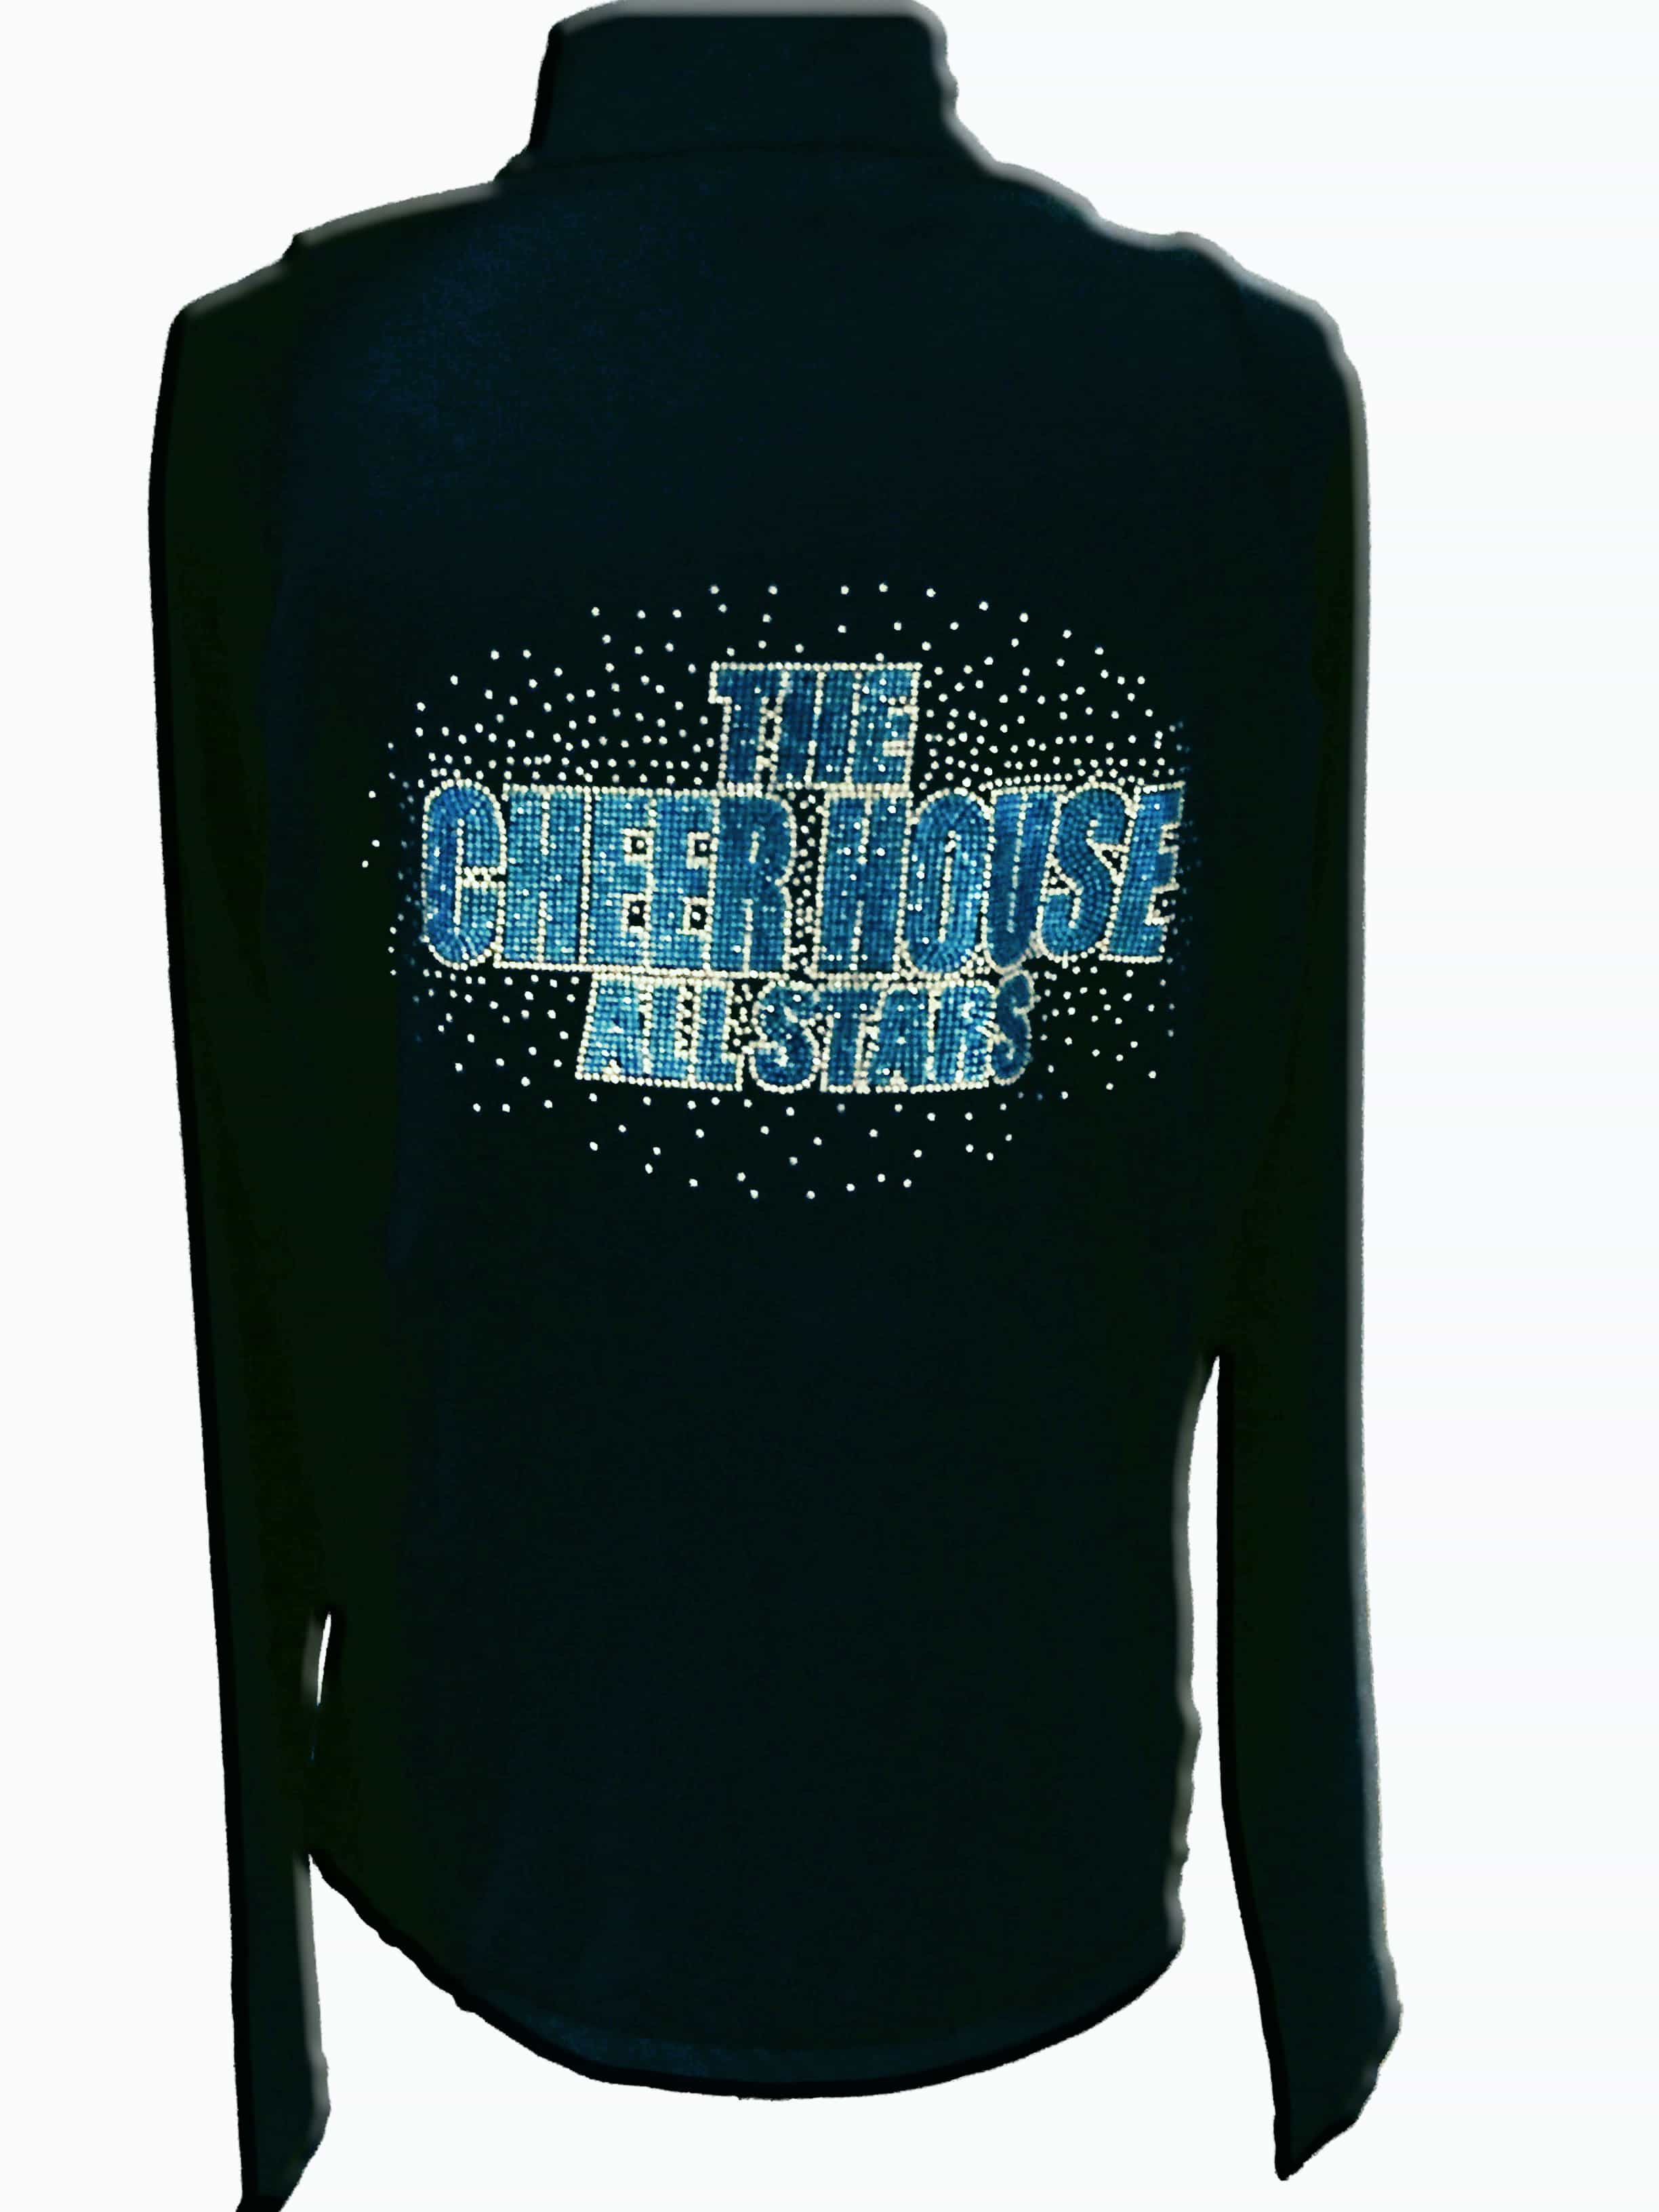 The Cheer House All-Stars cheer team jackets | Custom Cheer Jackets